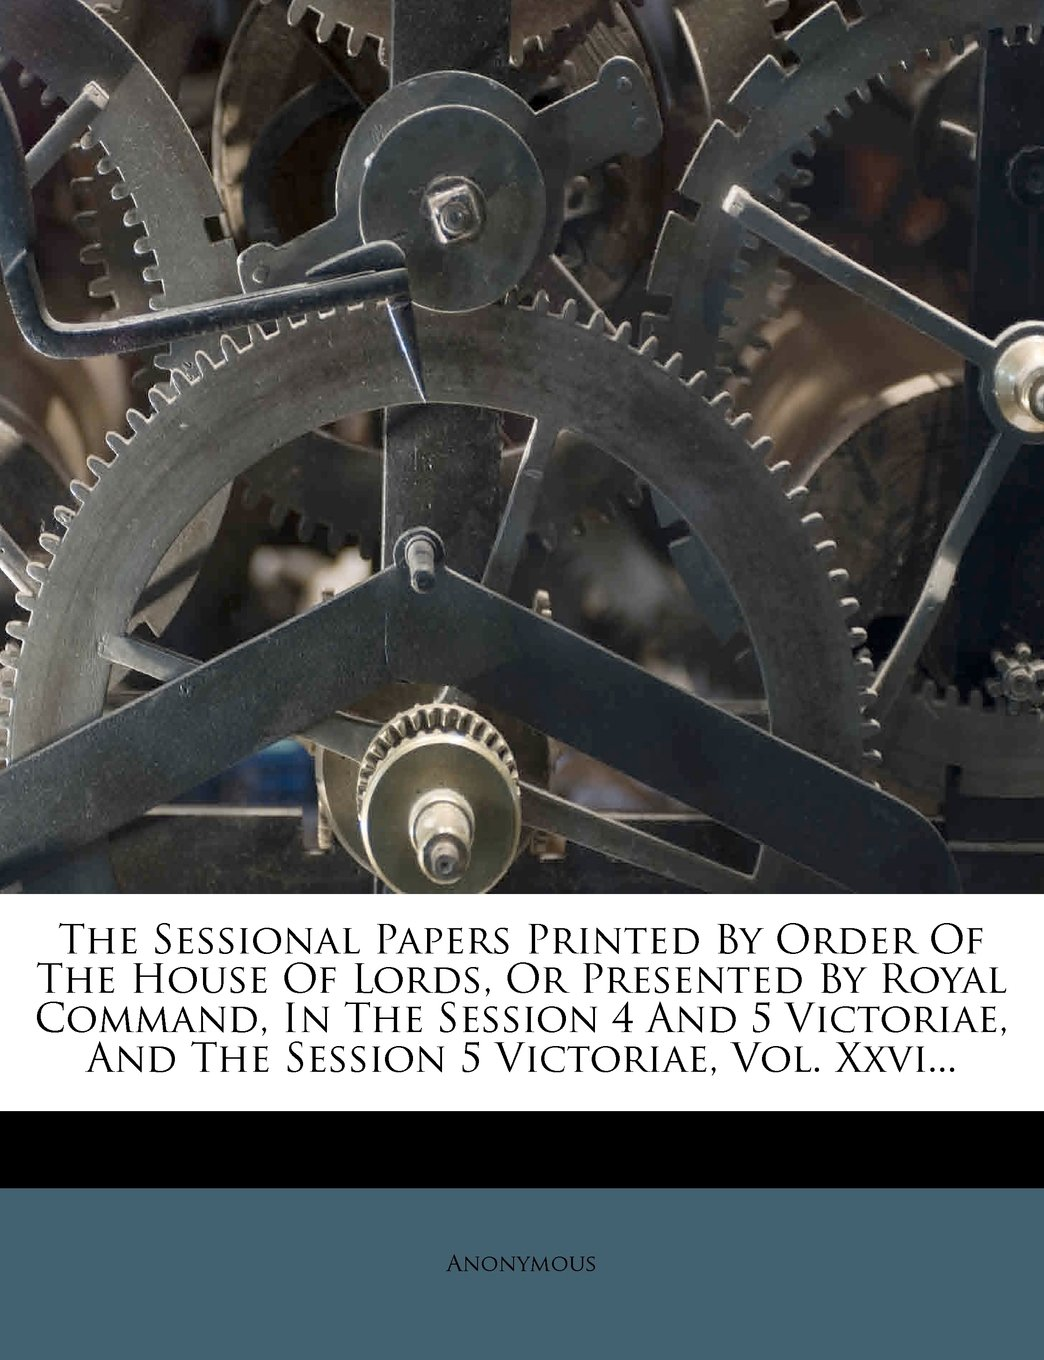 Read Online The Sessional Papers Printed By Order Of The House Of Lords, Or Presented By Royal Command, In The Session 4 And 5 Victoriae, And The Session 5 Victoriae, Vol. Xxvi... ebook